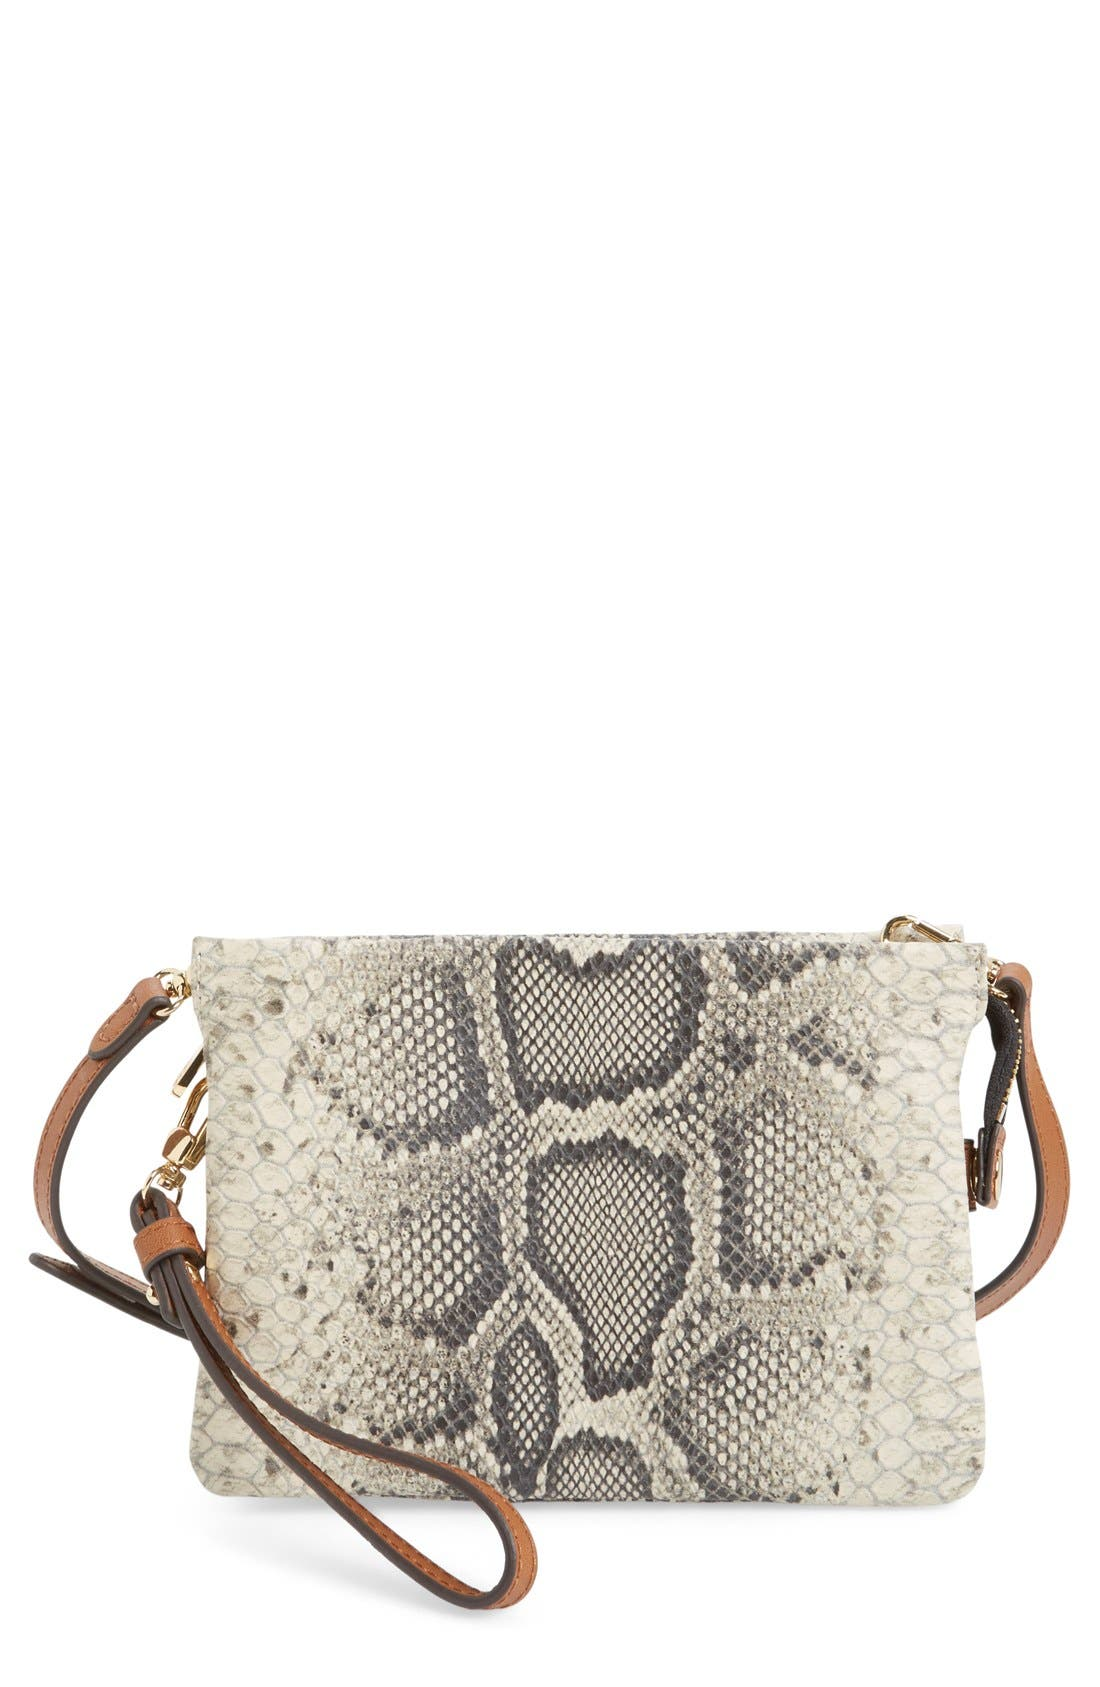 'Cami' Leather Crossbody Bag,                             Main thumbnail 33, color,